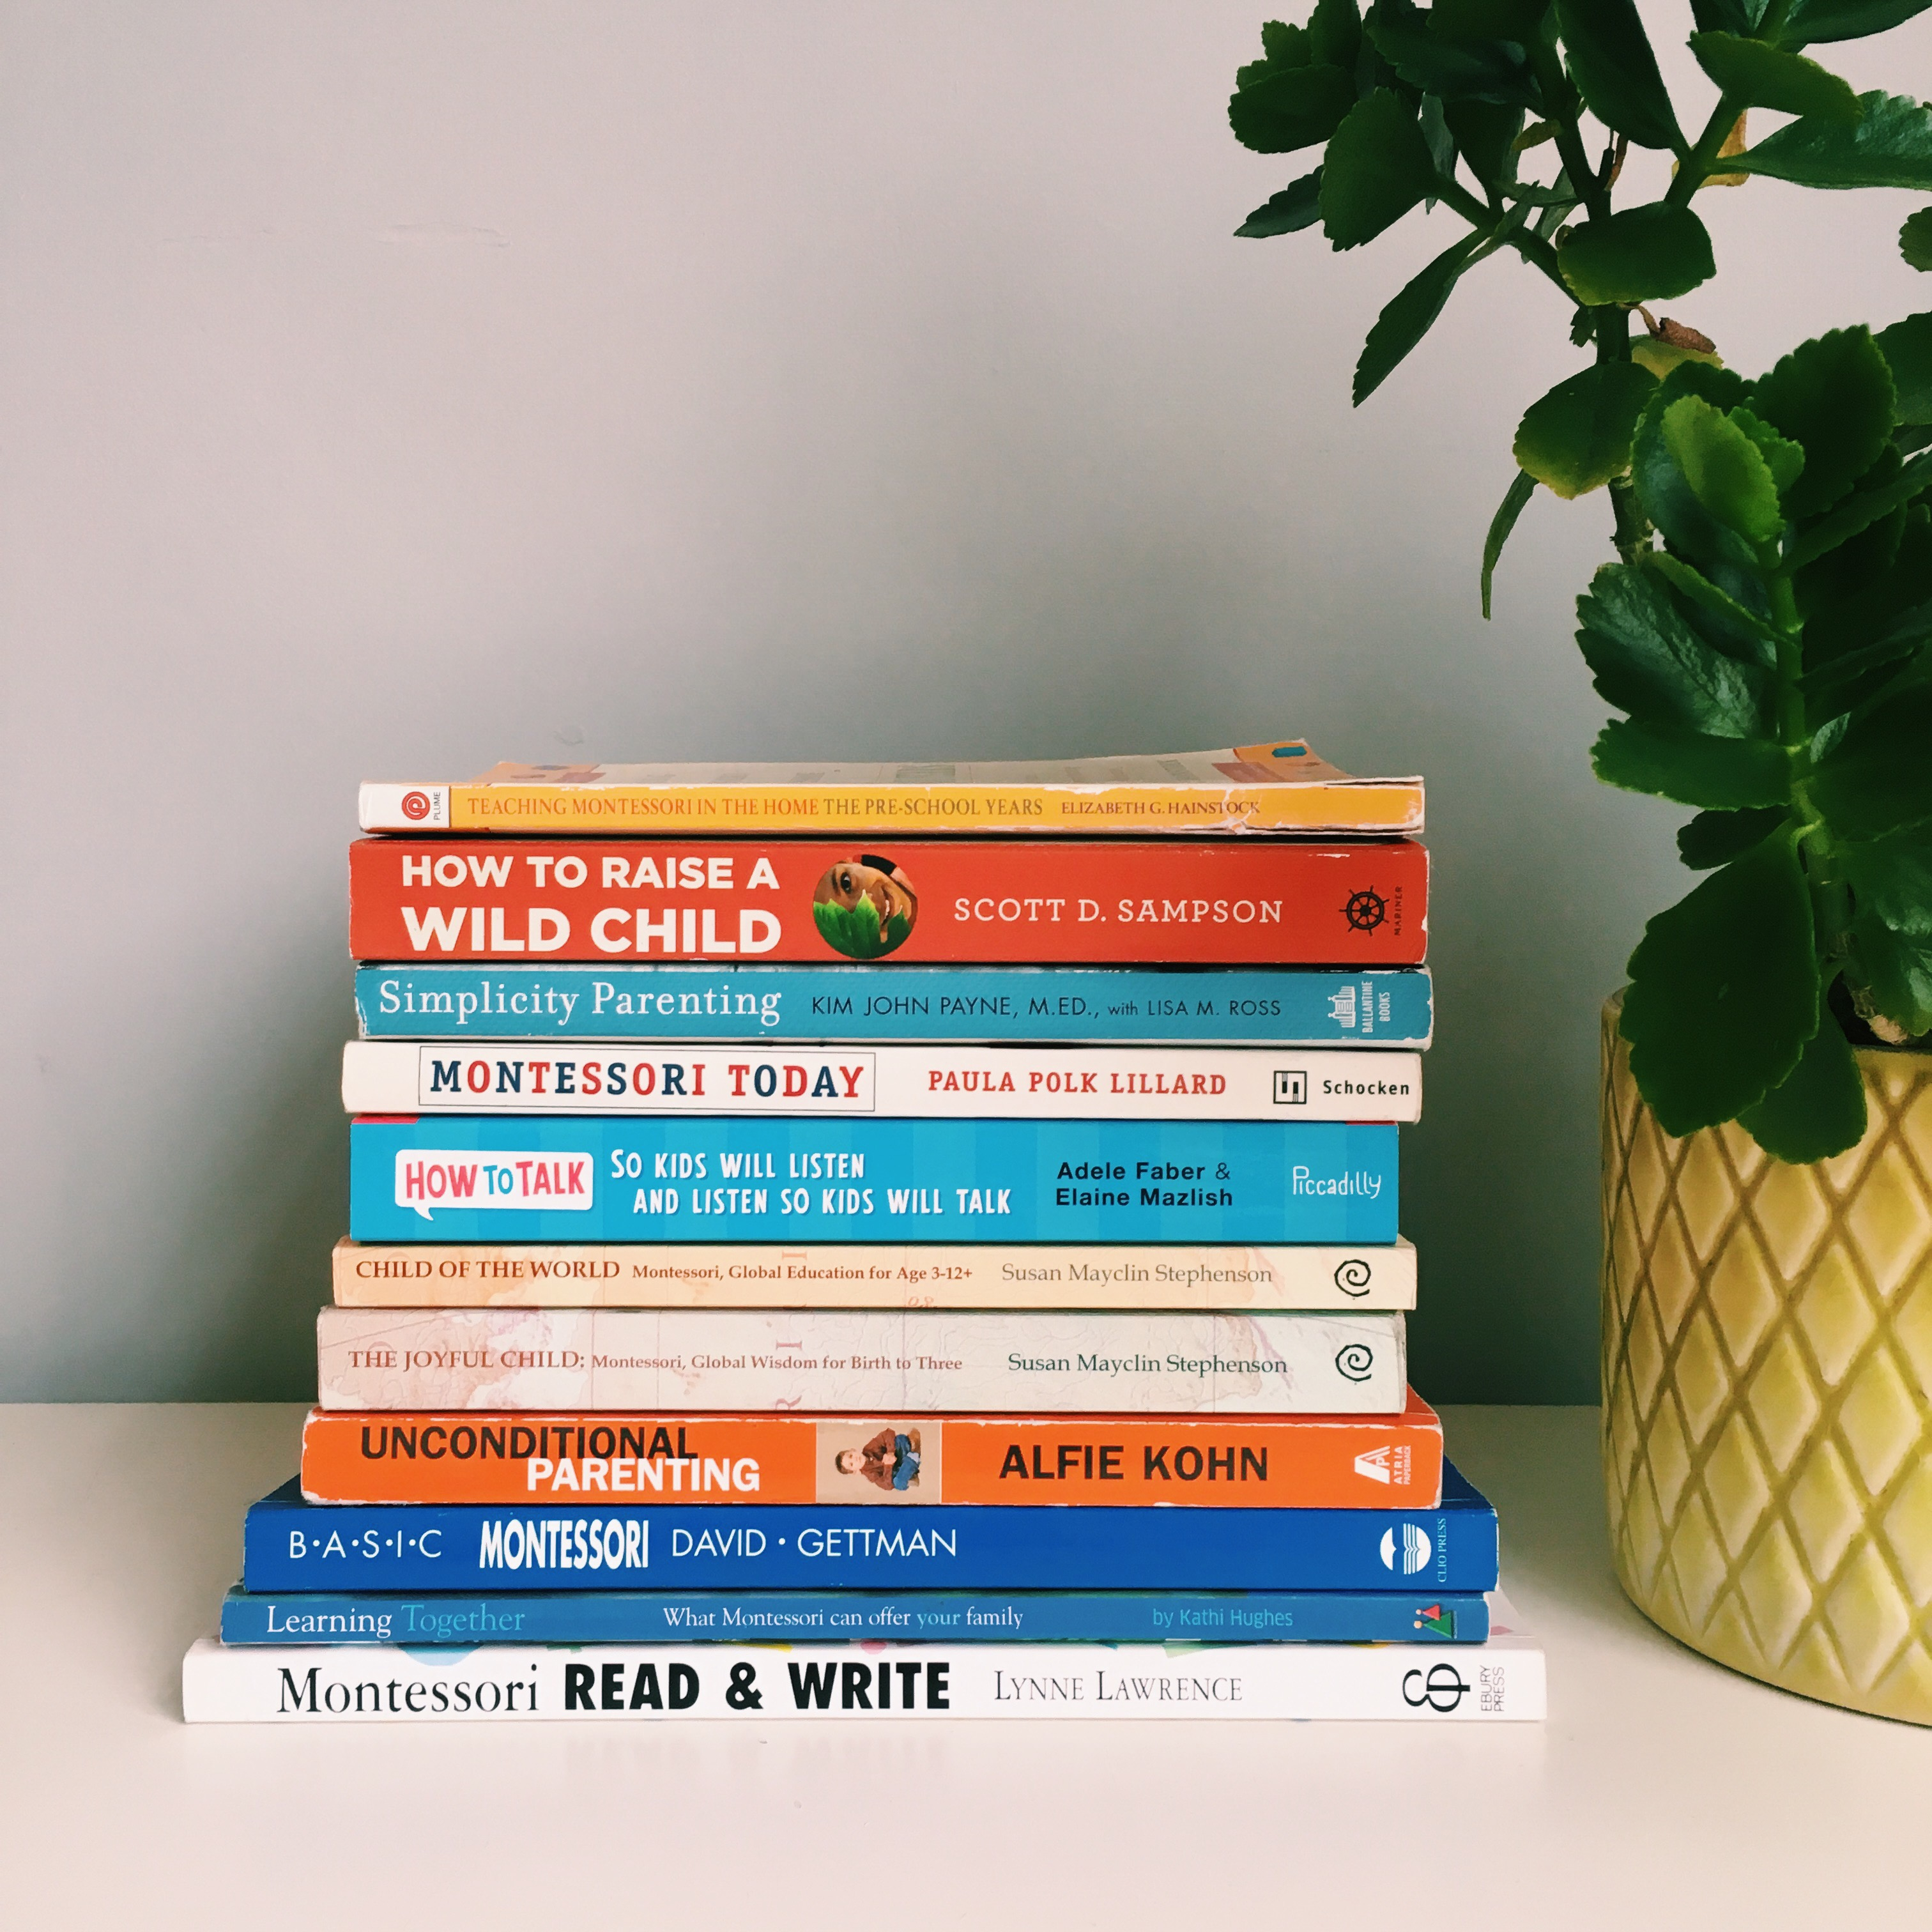 Global Education for Age 3-12+ Montessori Child of the World